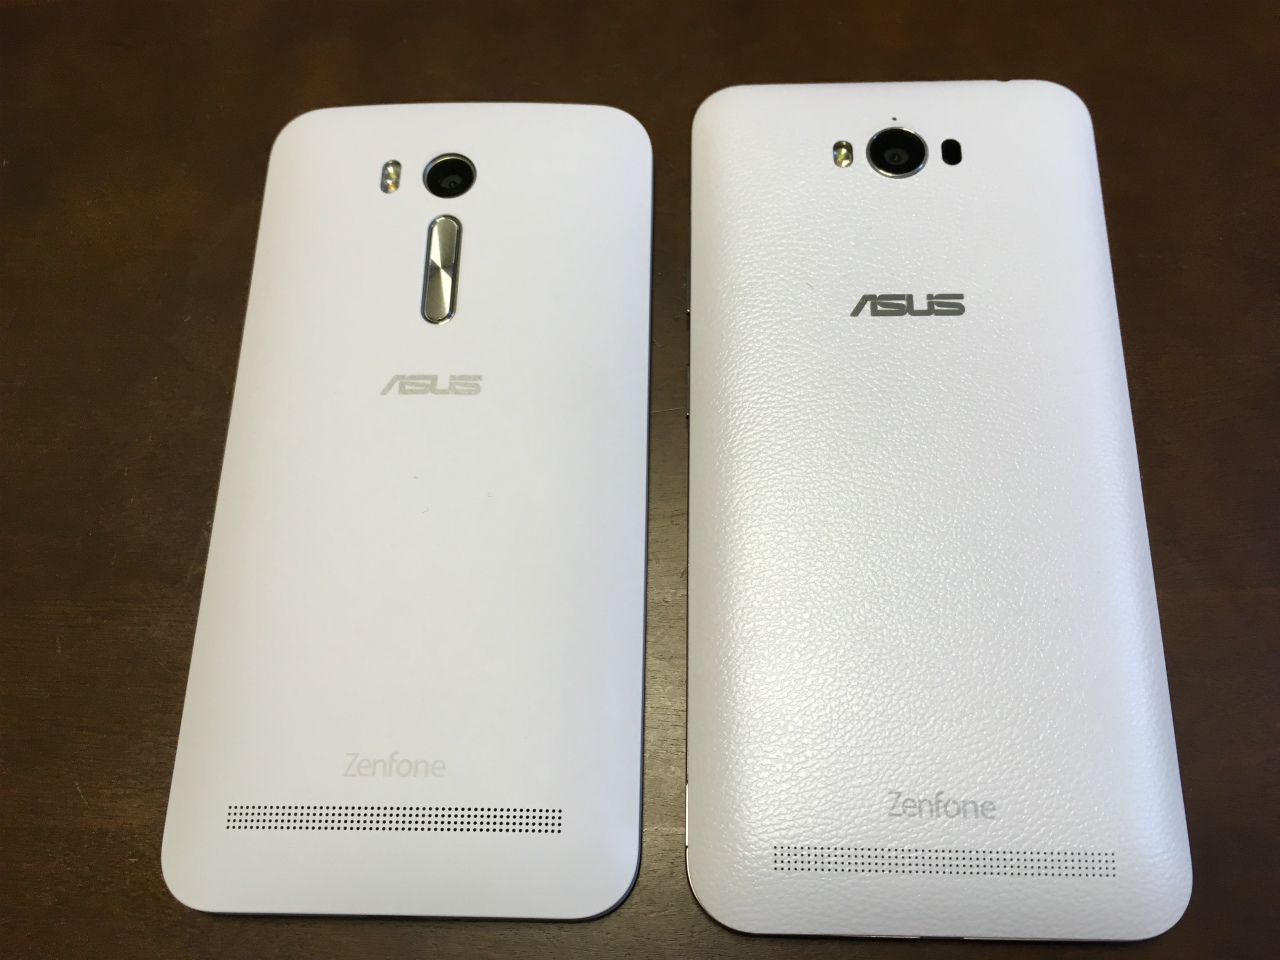 1226-201604_ASUS ZB551KL-WH16 07